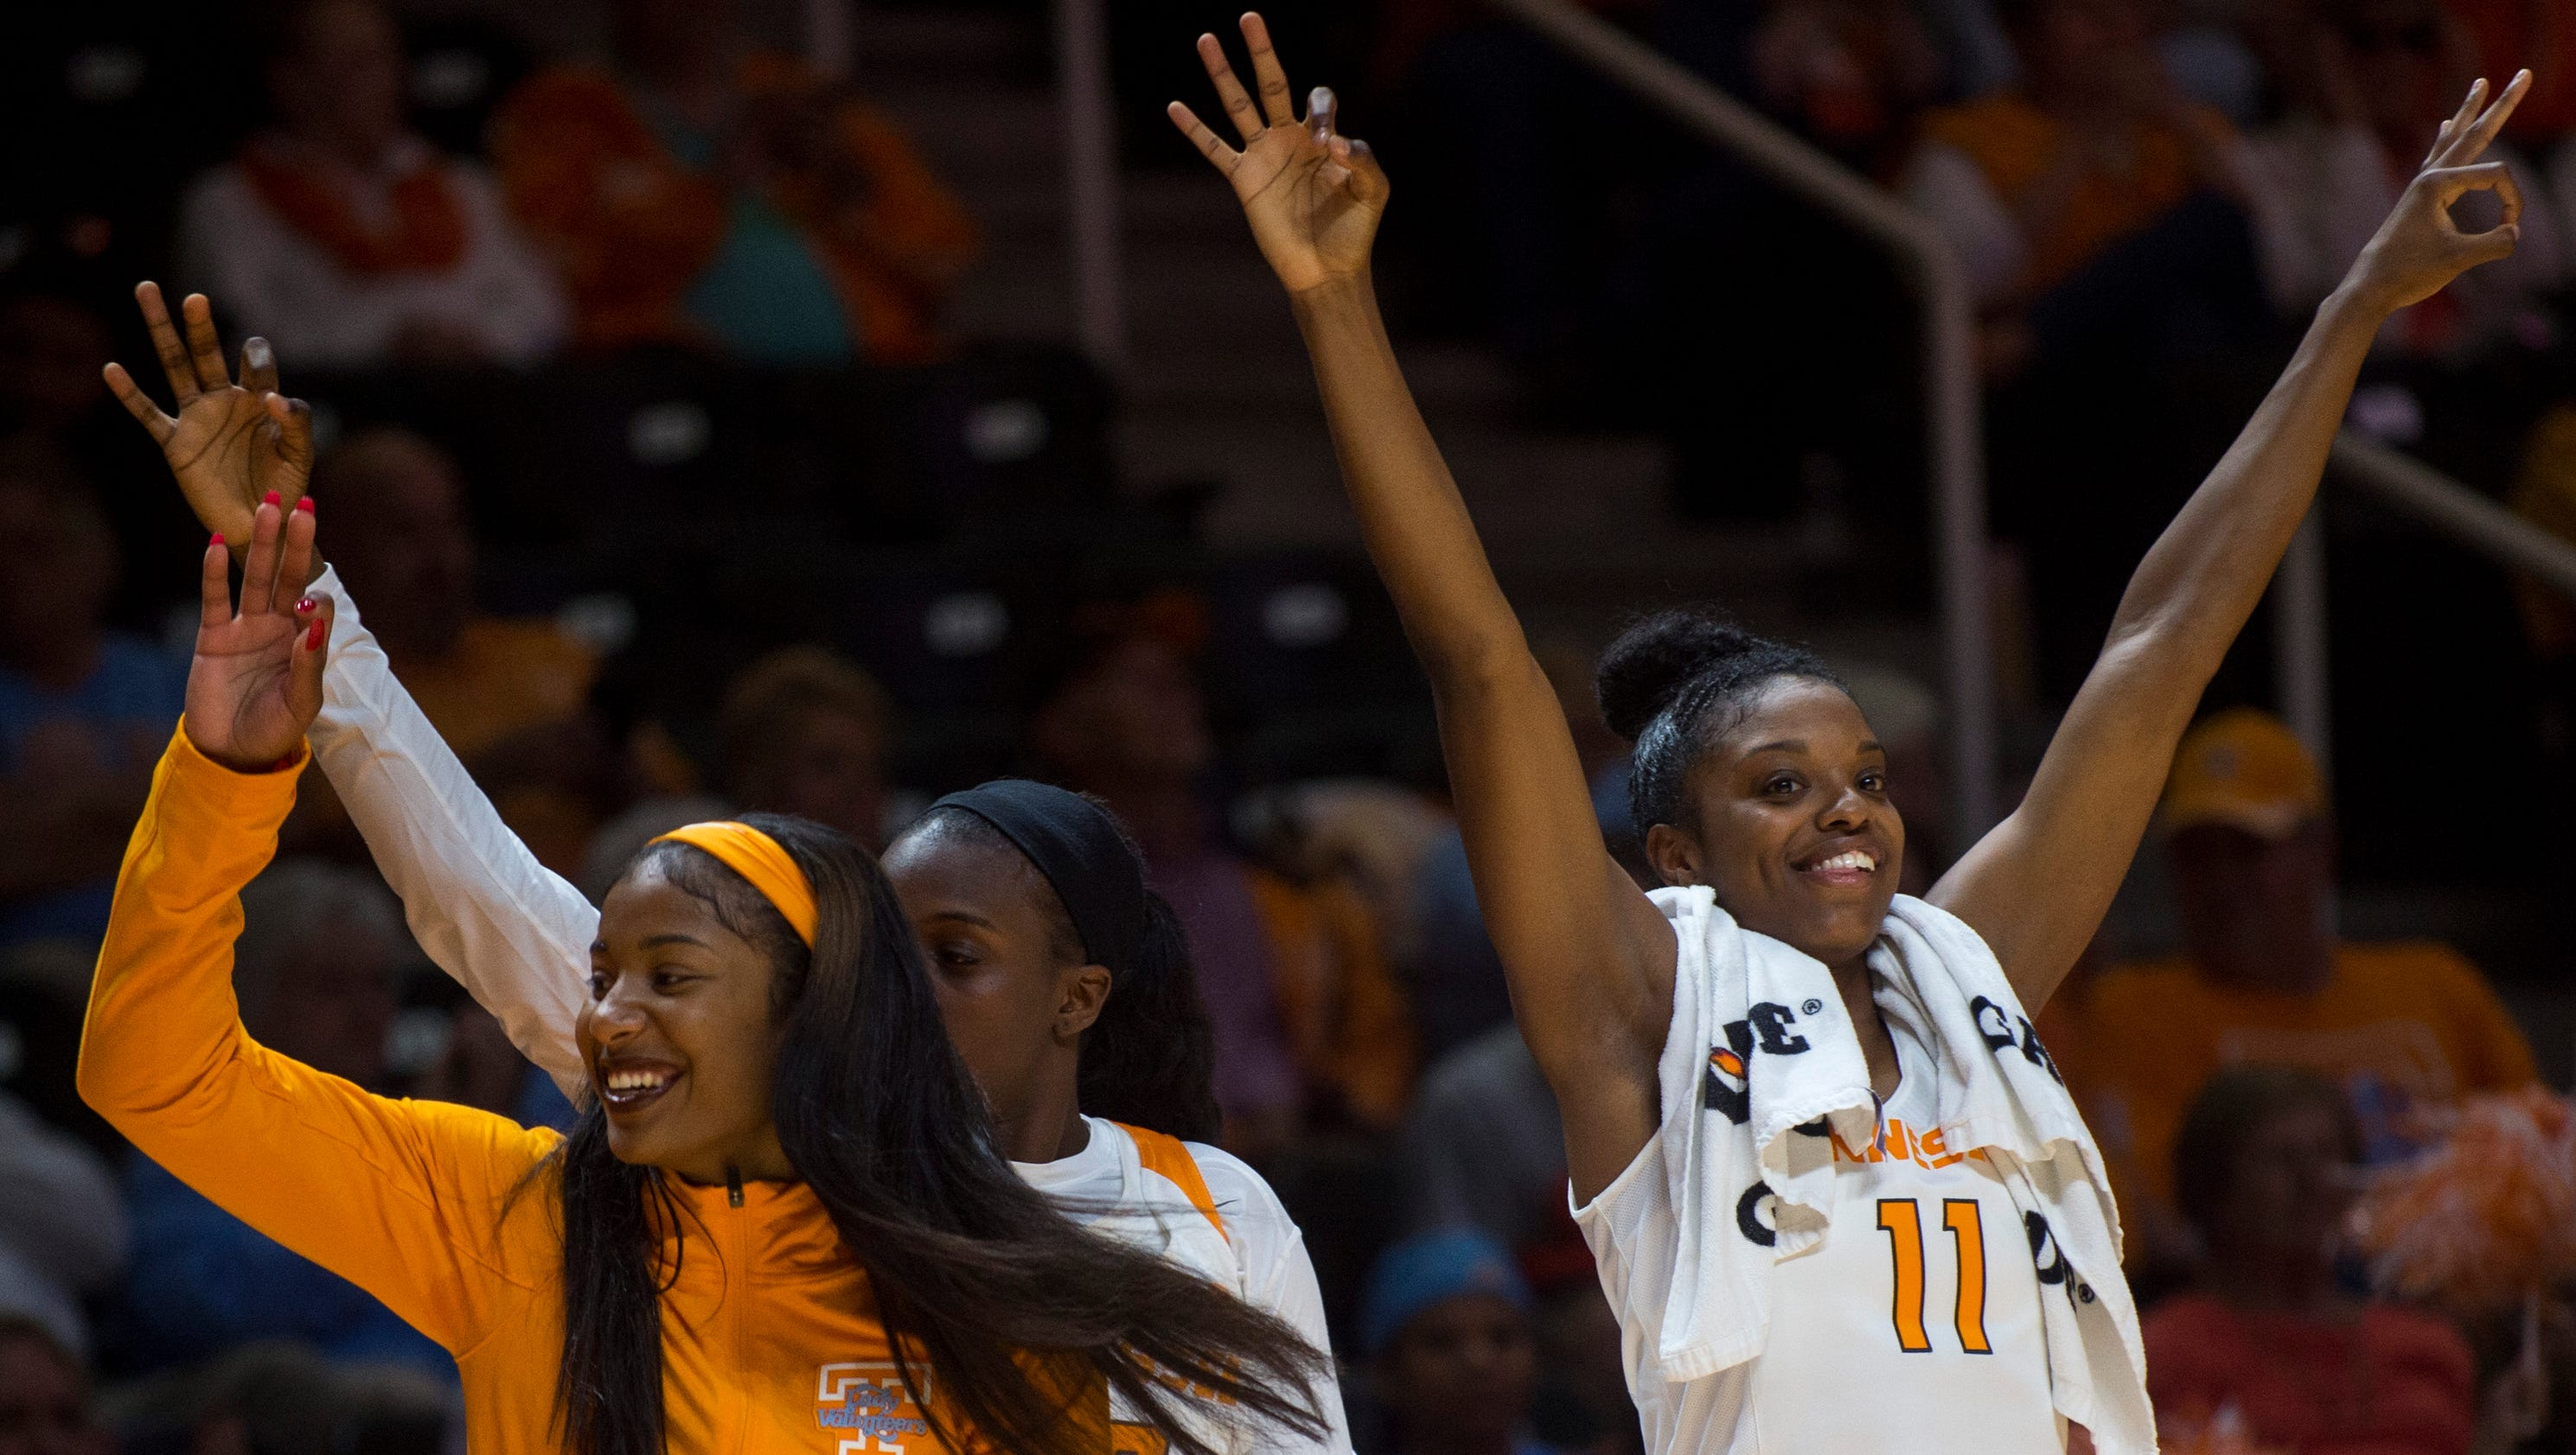 Lady Vols familiar with challenge presented by Baylor